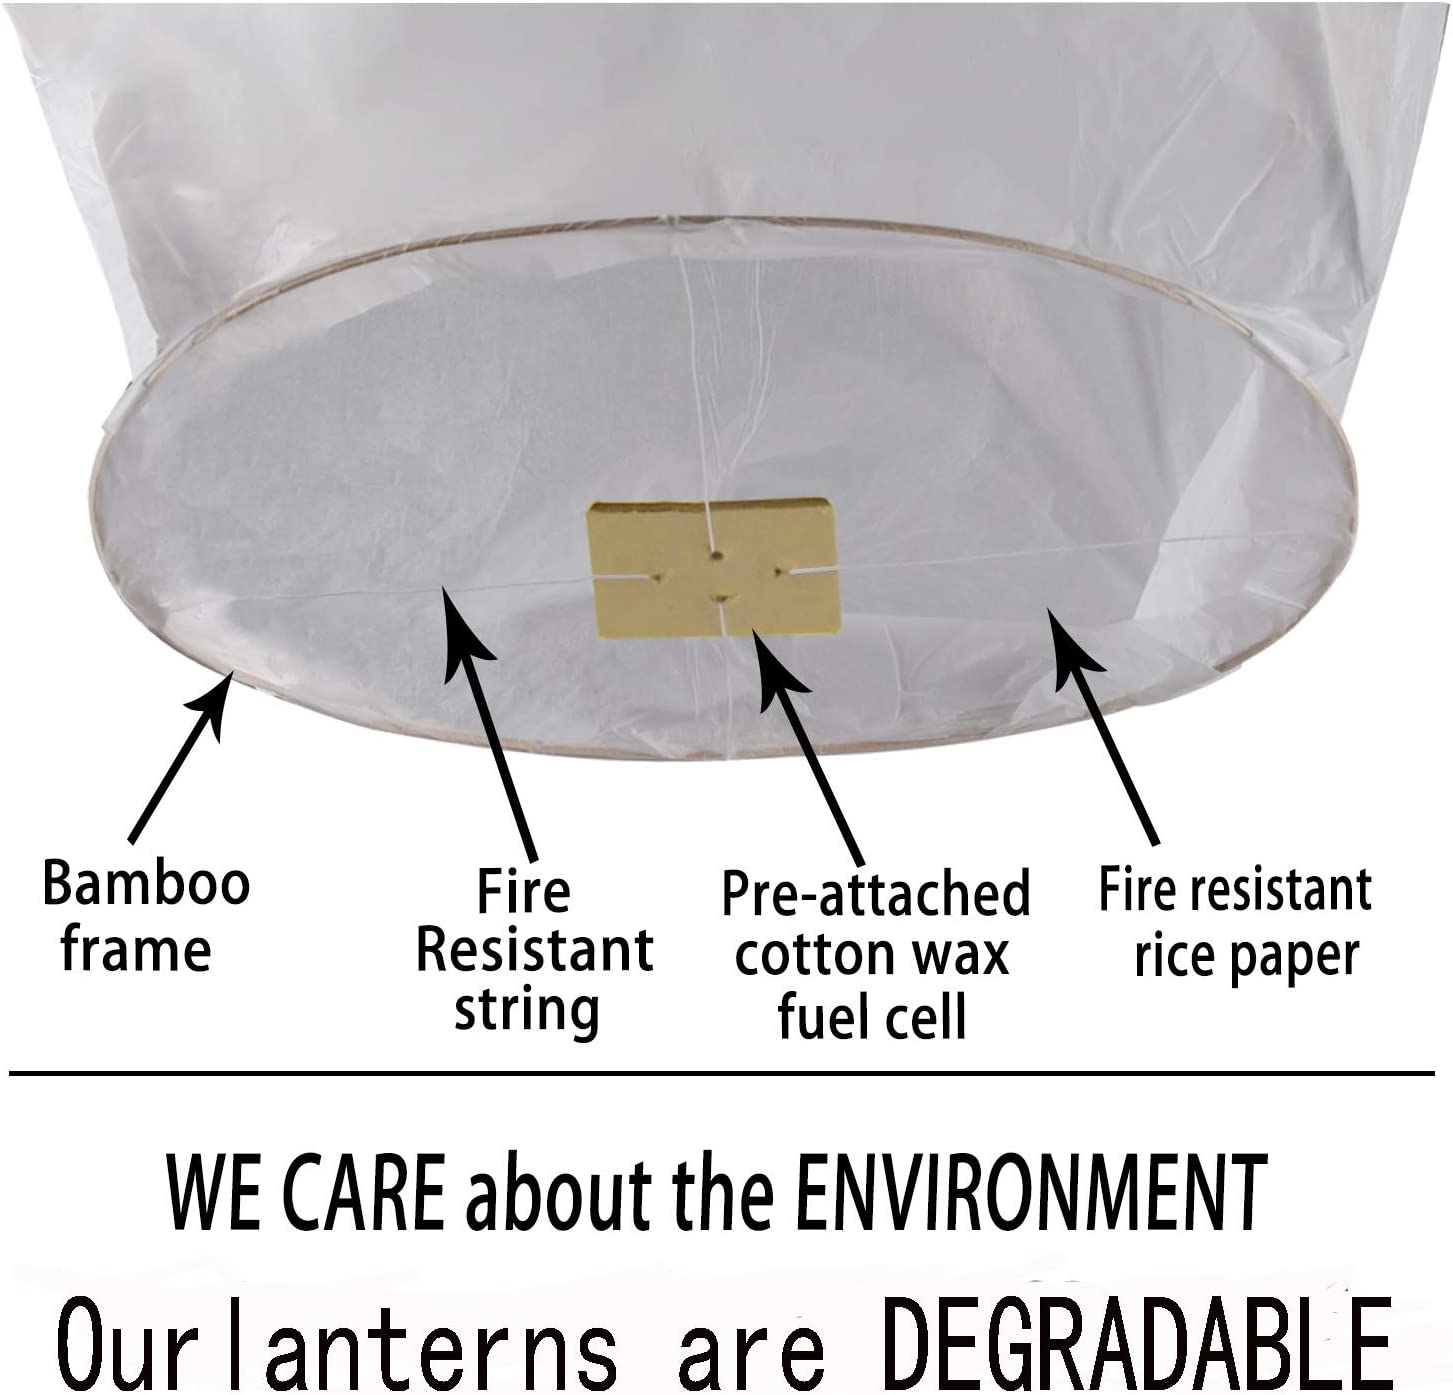 Flying Lantern for Birthdays Paper Lanterns 100/% Biodegradable Eco Friendly Weddings Sky Lanterns Fully Assembled Chinese Lanterns 6 Pack White Funerals and More. Anniversaries